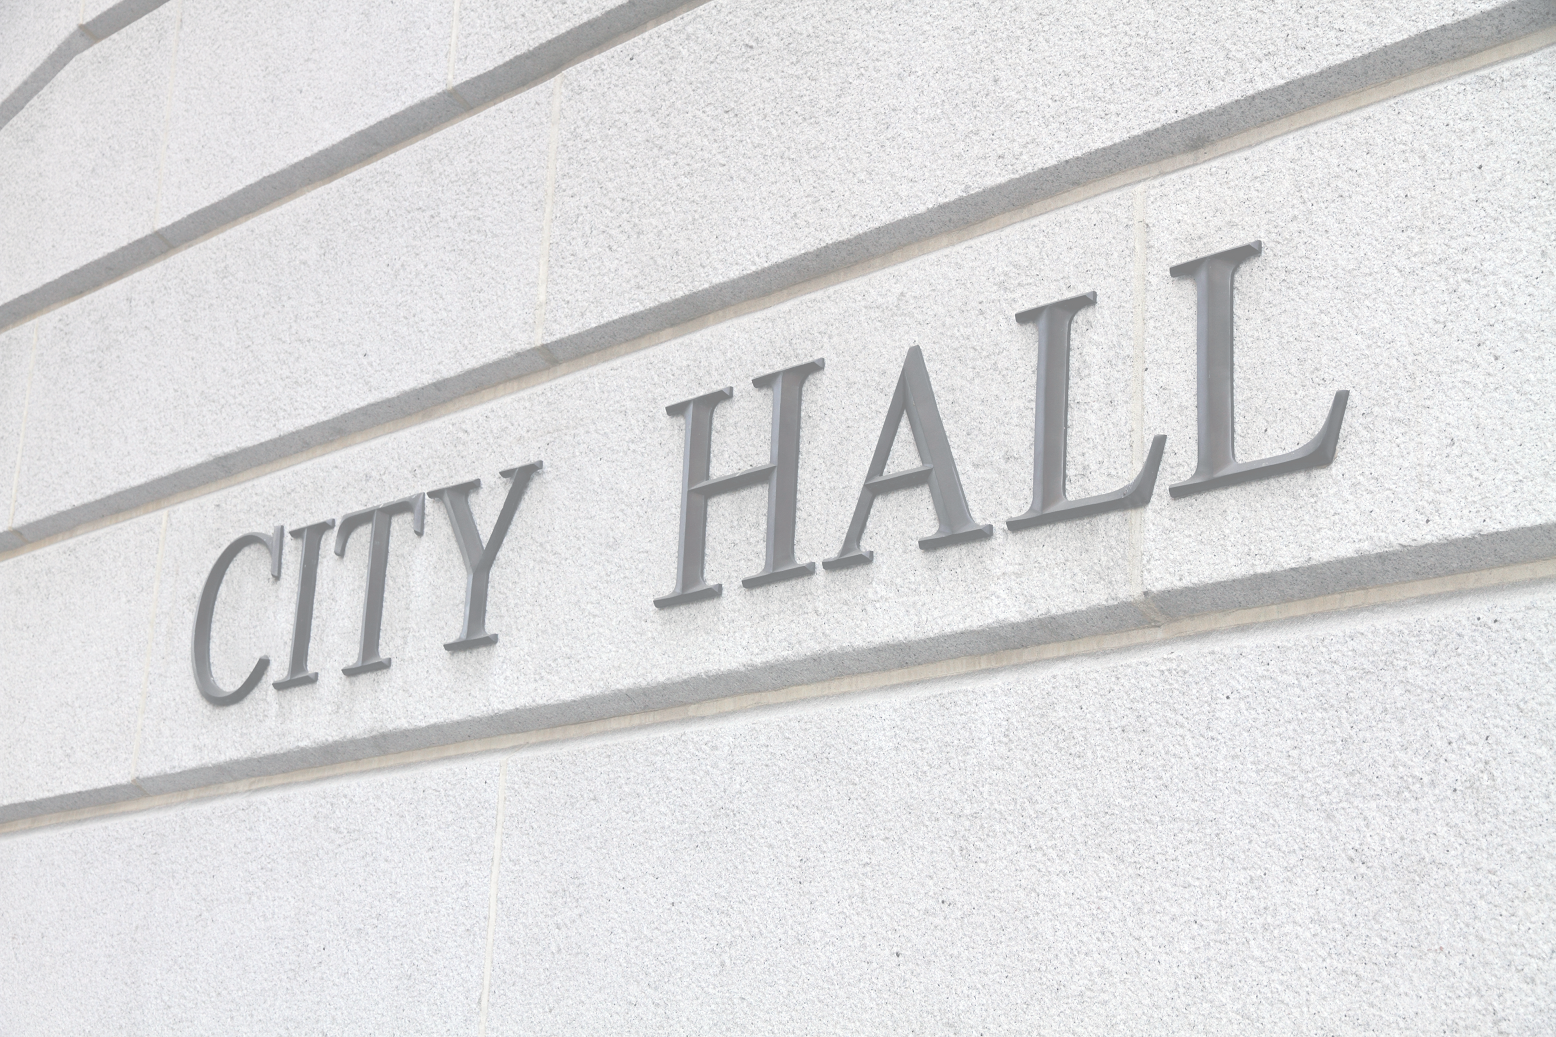 Blog: Spotlight on Local Government – Where is CX heading for citizens?